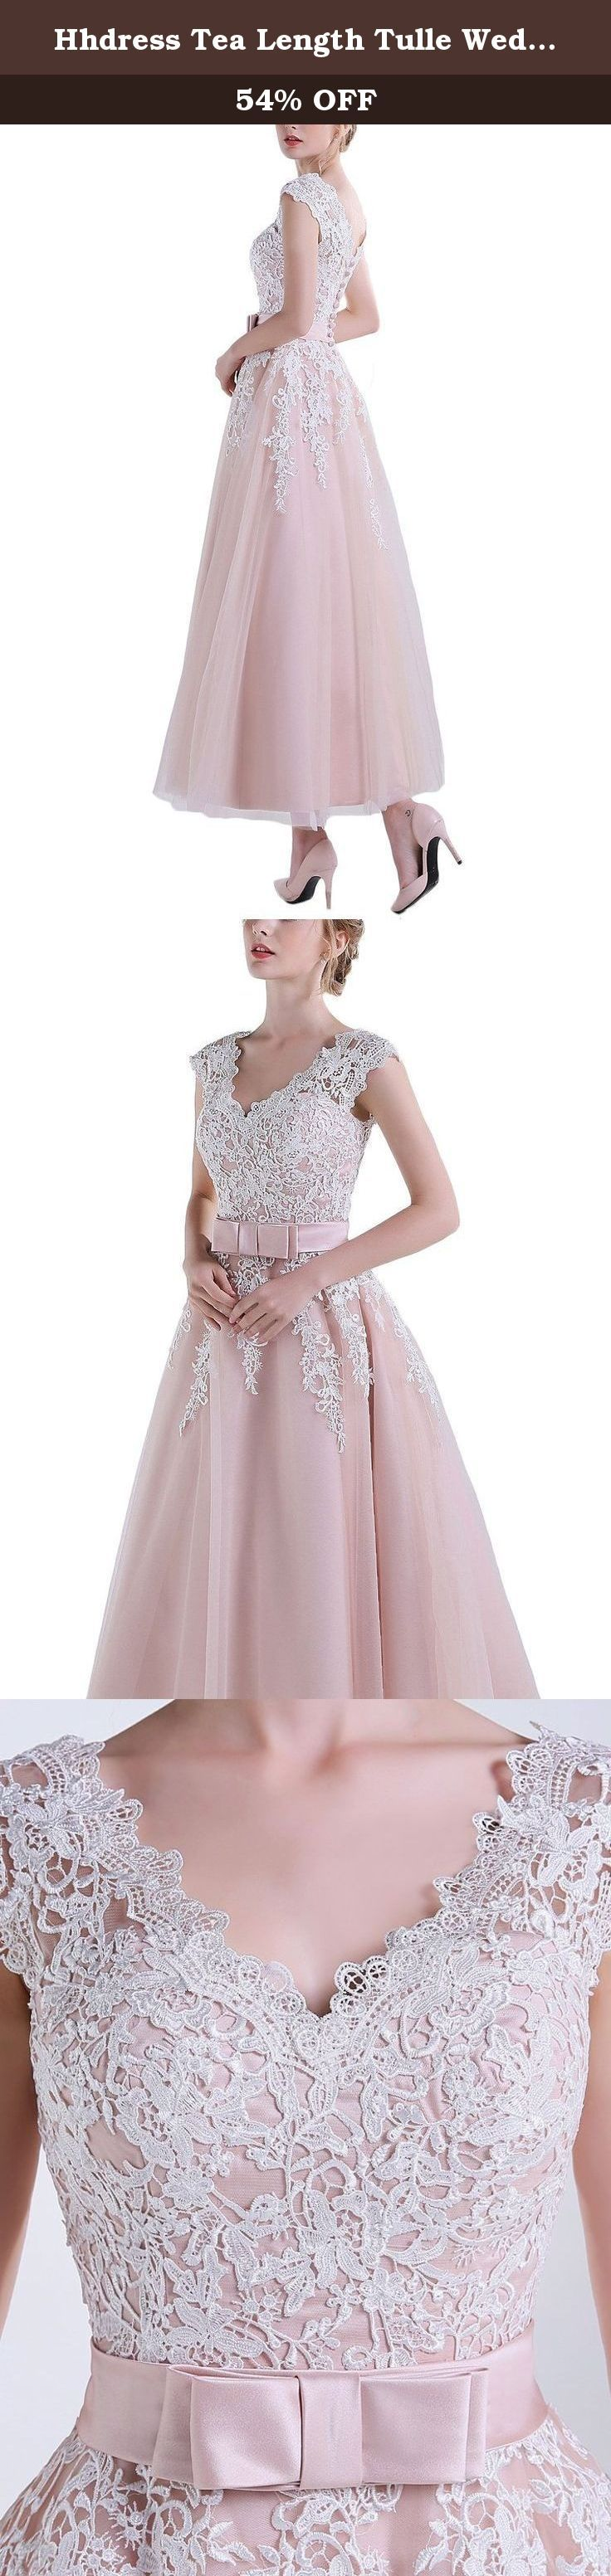 Hhdress Tea Length Tulle Wedding Dresses Womens Short Lace Prom Dress. Dresses for wedding,bride,formal party,gowns ball,special occasion.